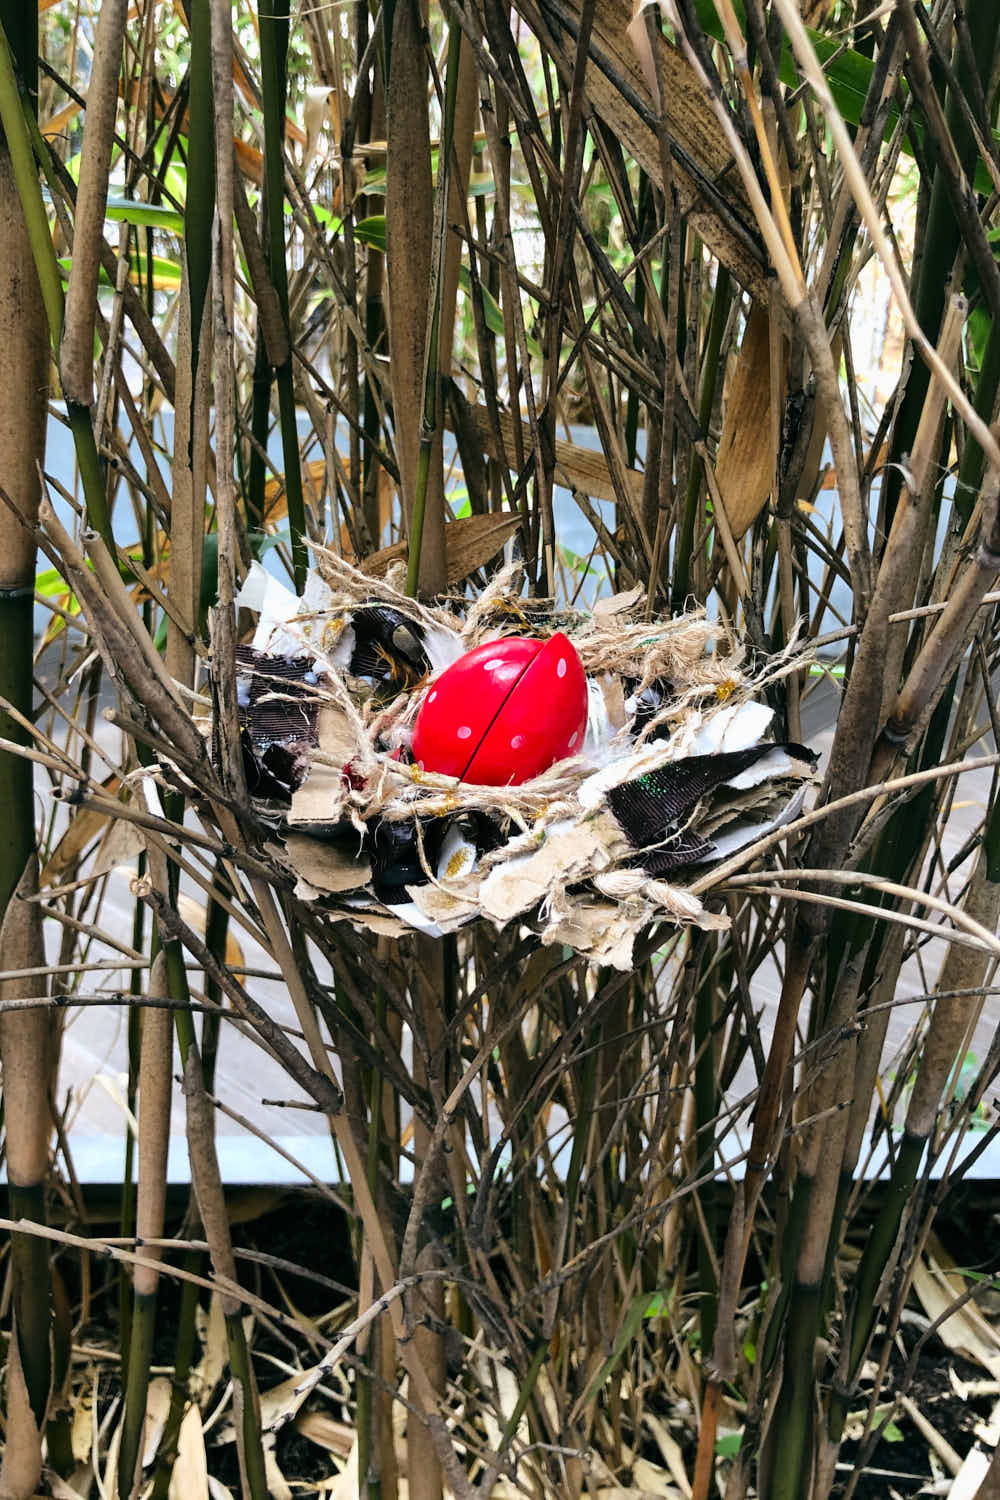 Bird Nest Craft - finished and in tree for display